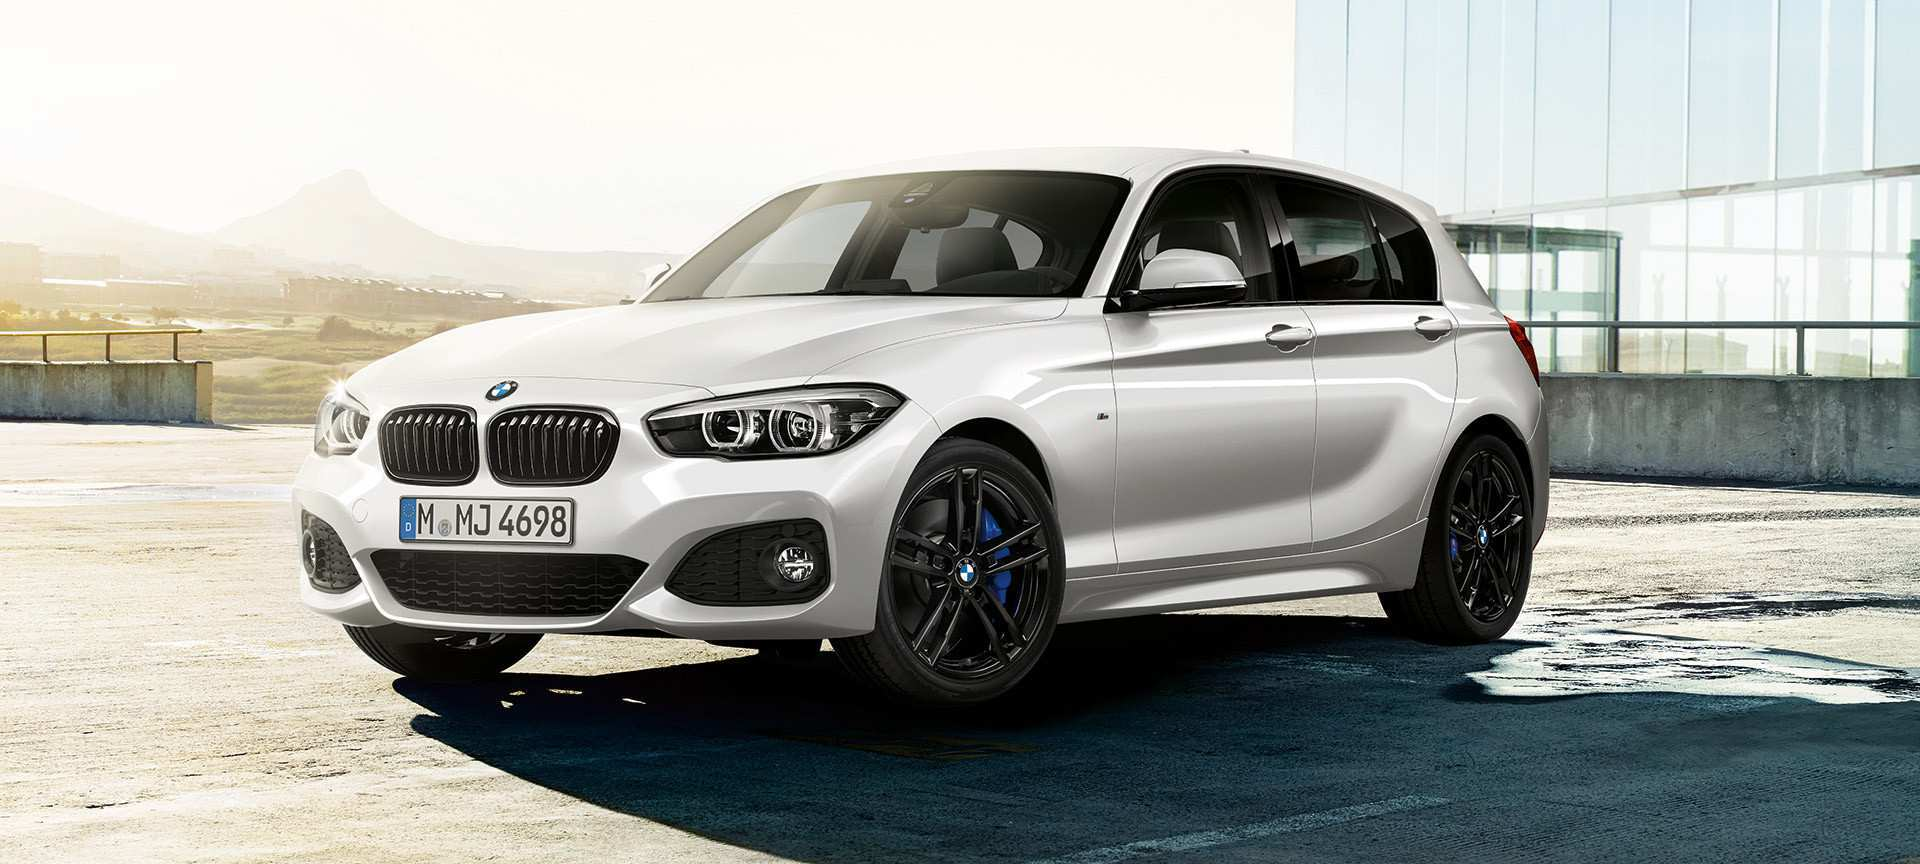 20 Great The The New Bmw 1 Series 2019 Price Interior with The The New Bmw 1 Series 2019 Price